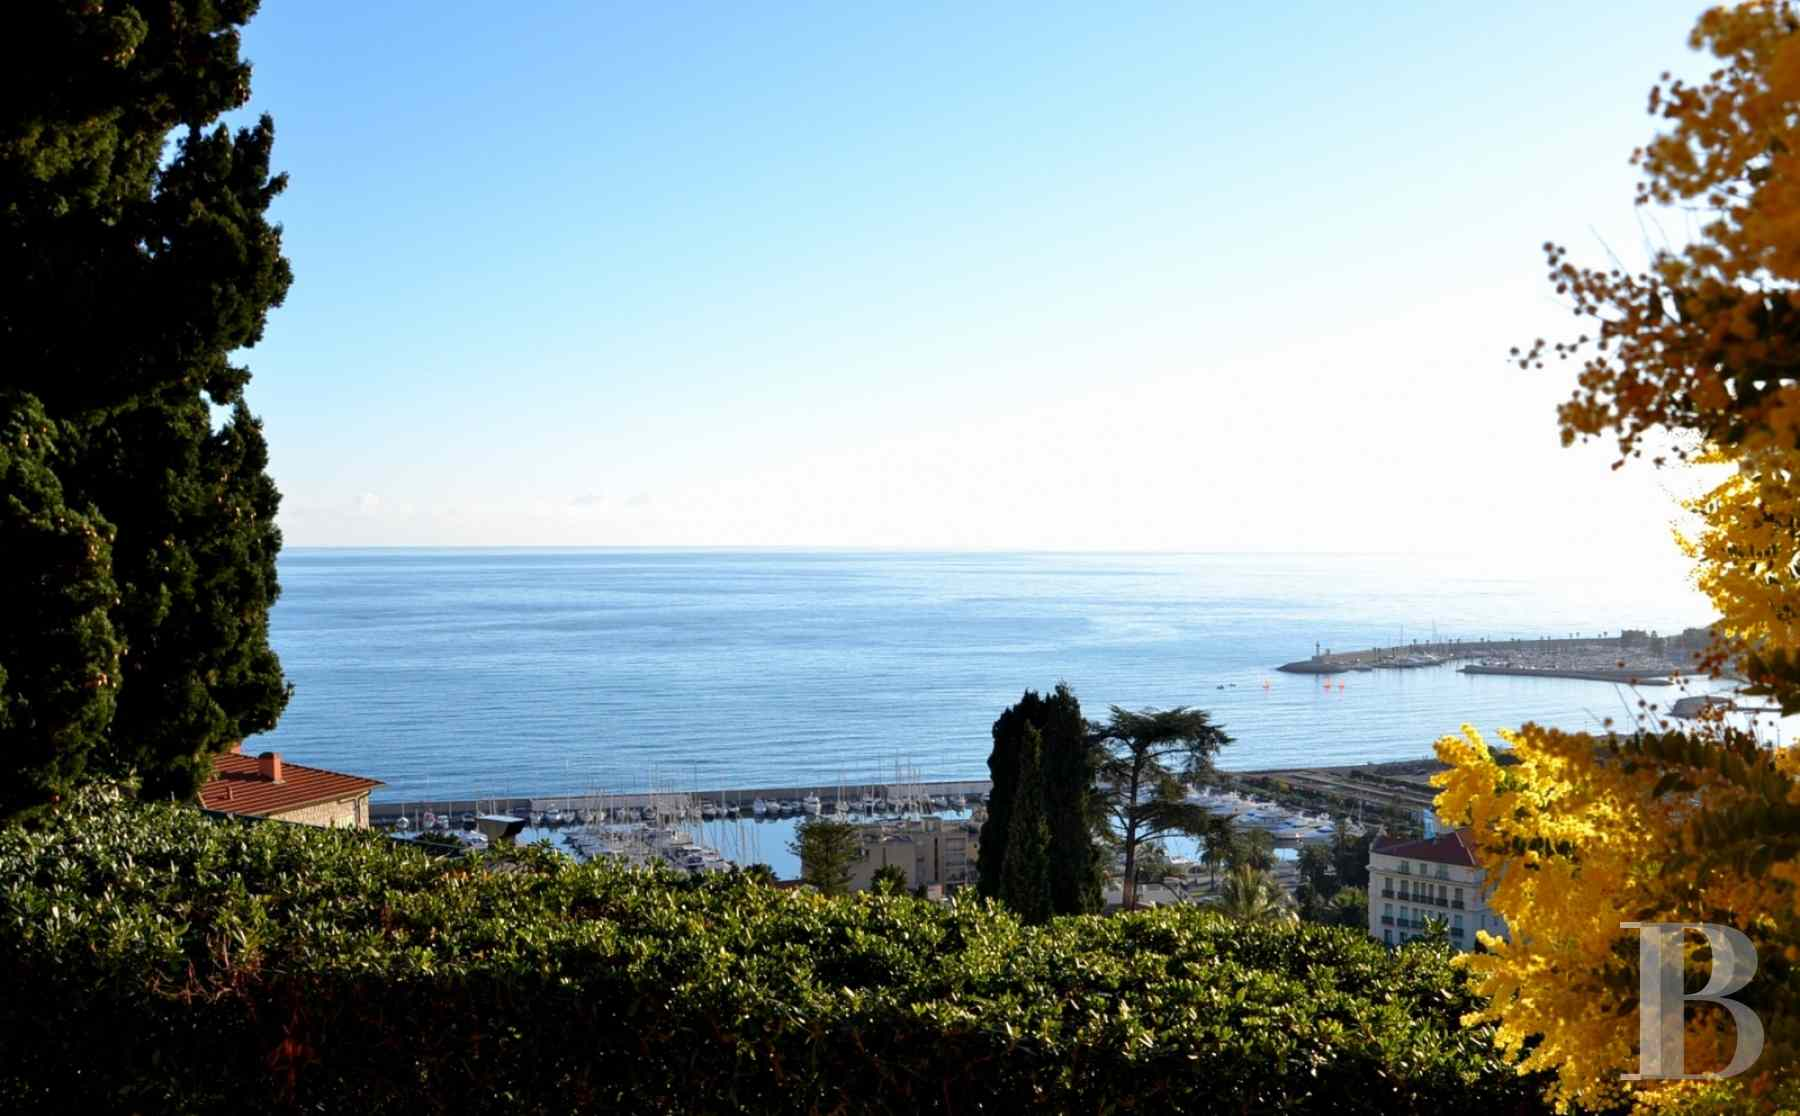 property for sale France provence cote dazur monaco neo - 13 zoom